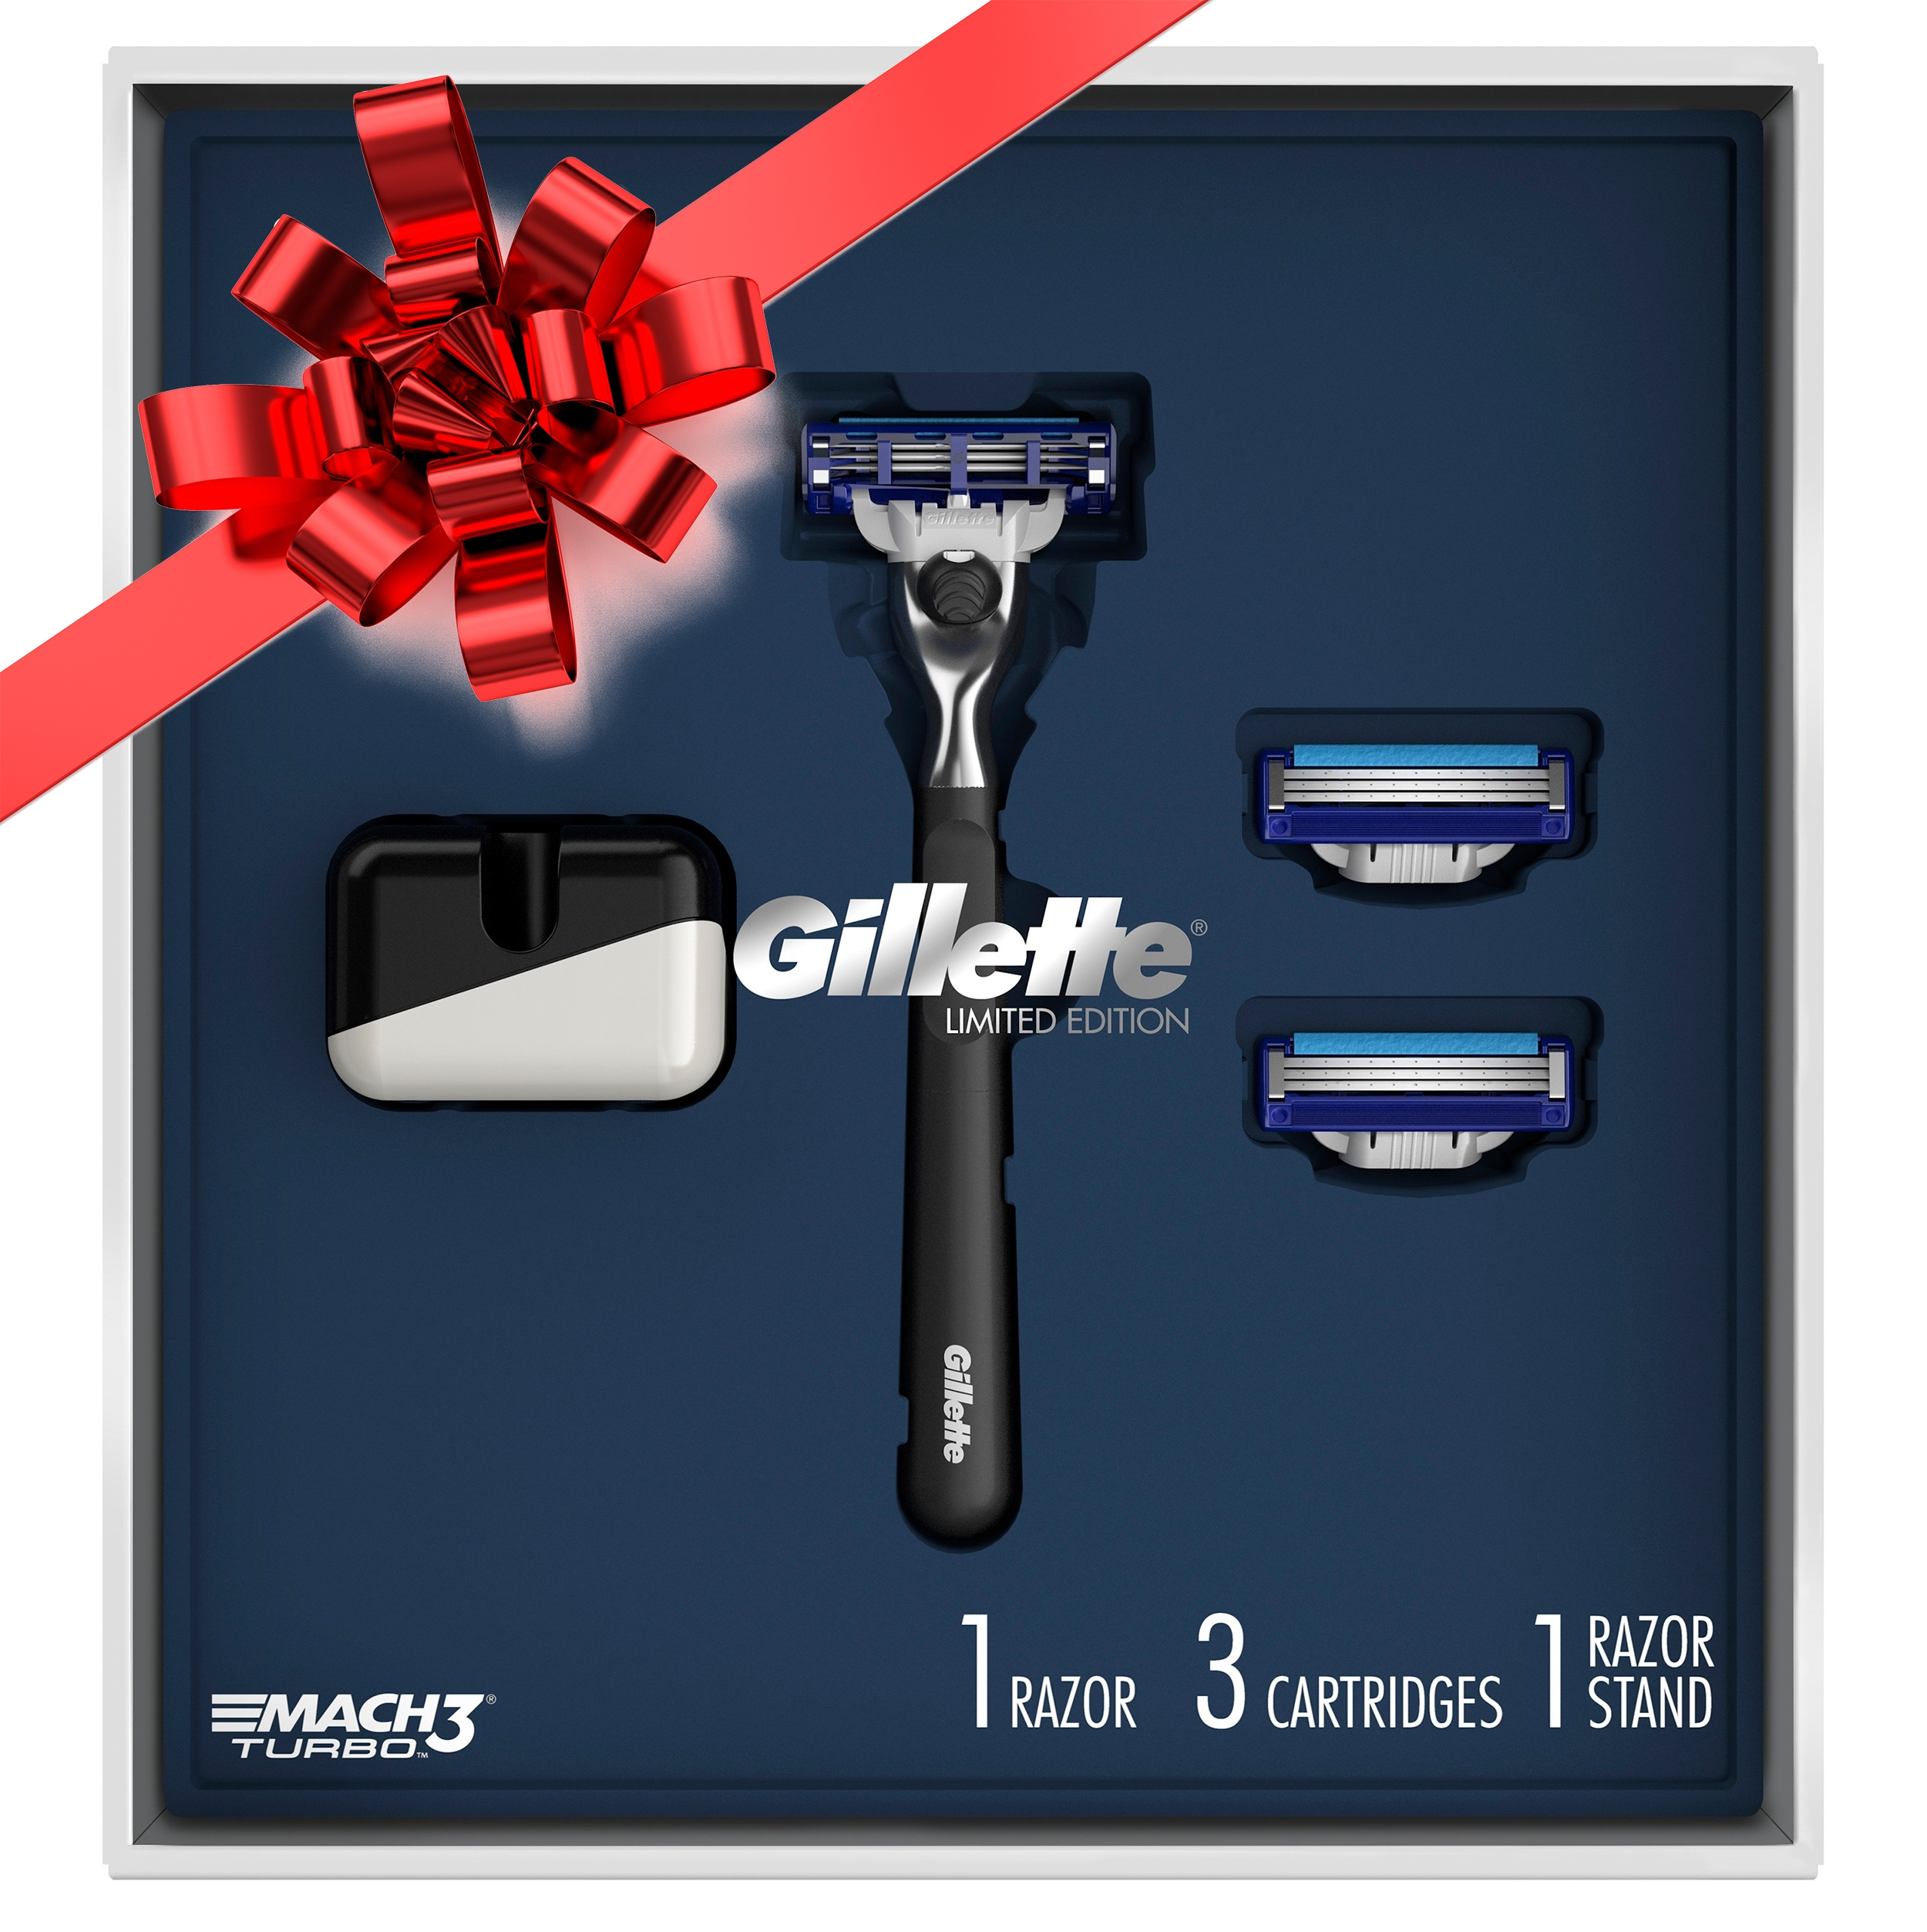 Gillette® Limited Edition Mach3 Turbo Razor Gift Pack